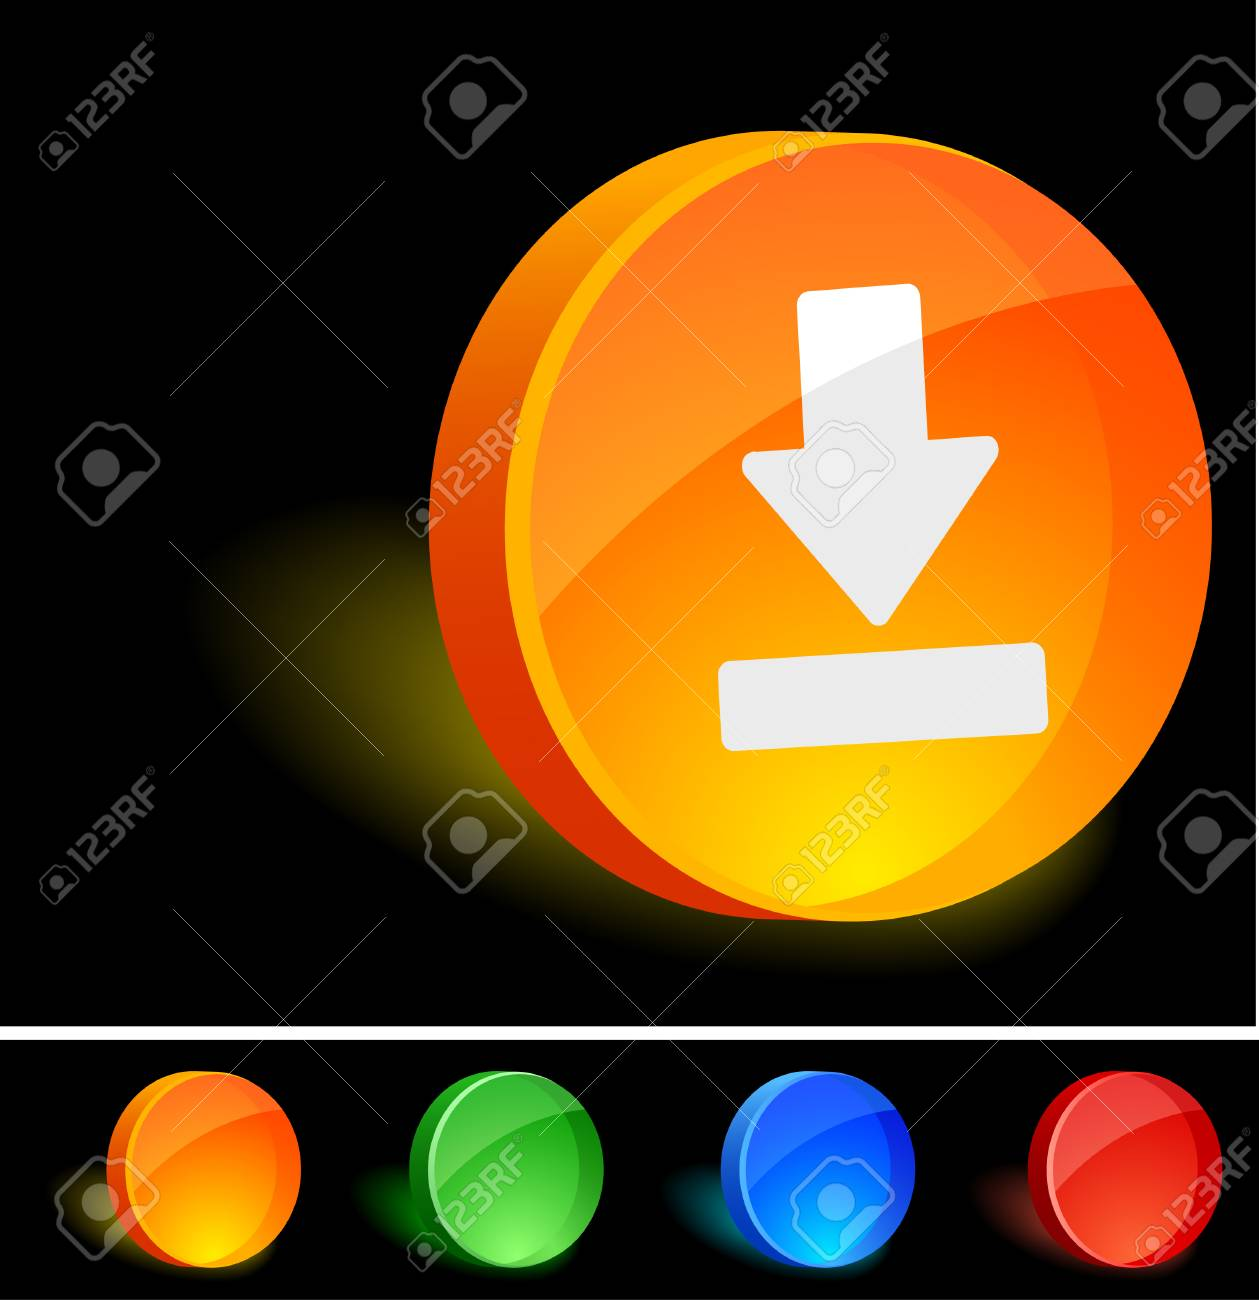 Download 3d icon. Vector illustration. Stock Vector - 5021578